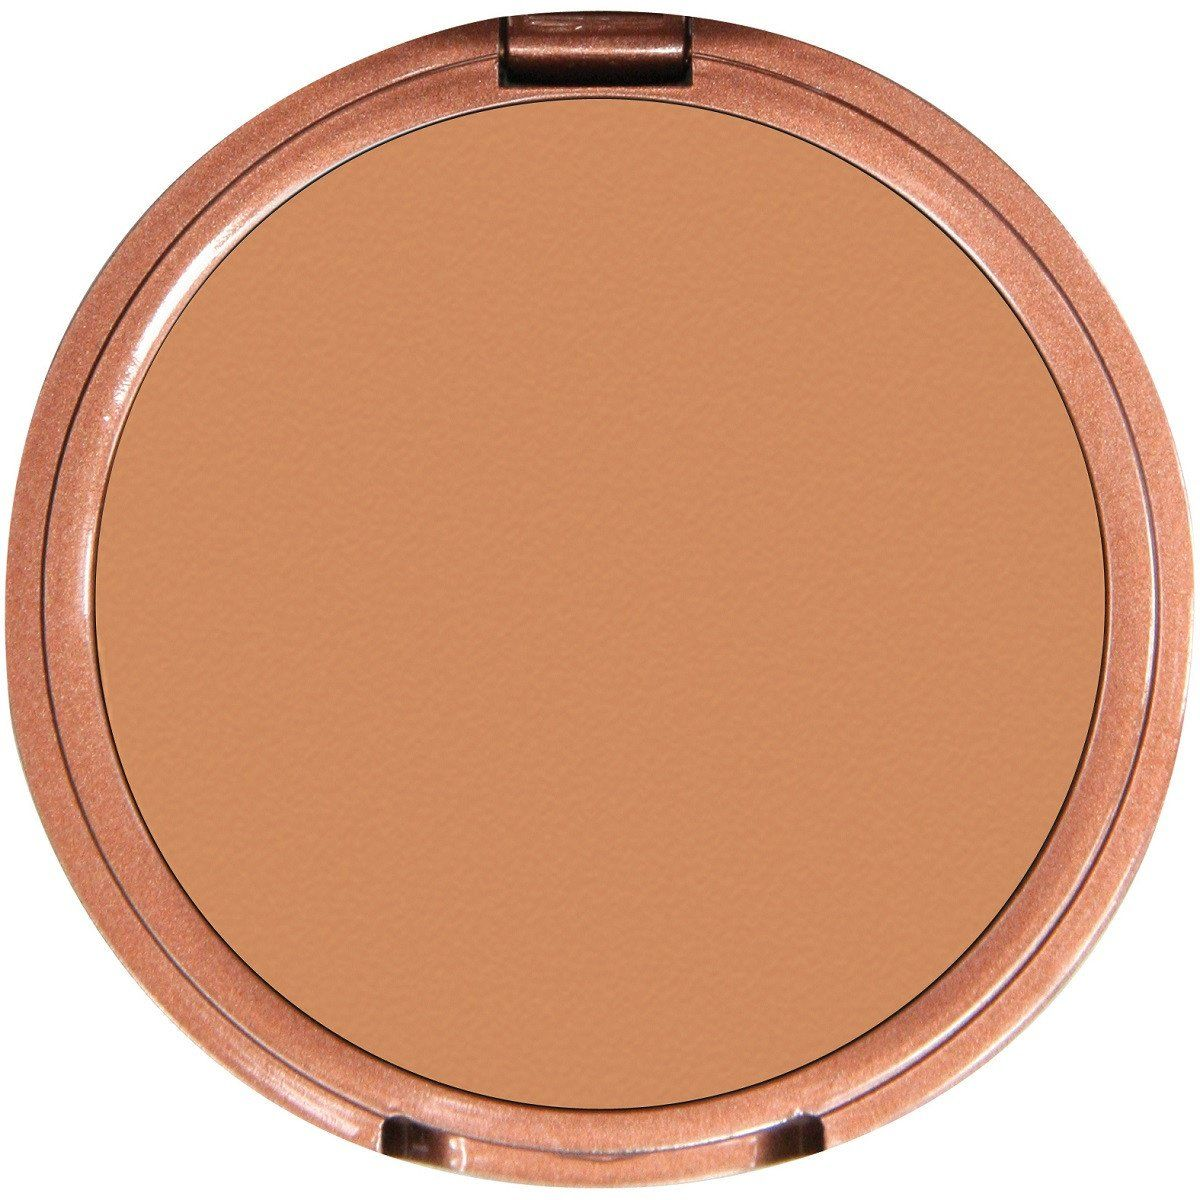 Beauty & Skin Care - Mineral Fusion - Pressed Powder Foundation - Olive 2 (for Olive Skin With Cool Undertones), 9g